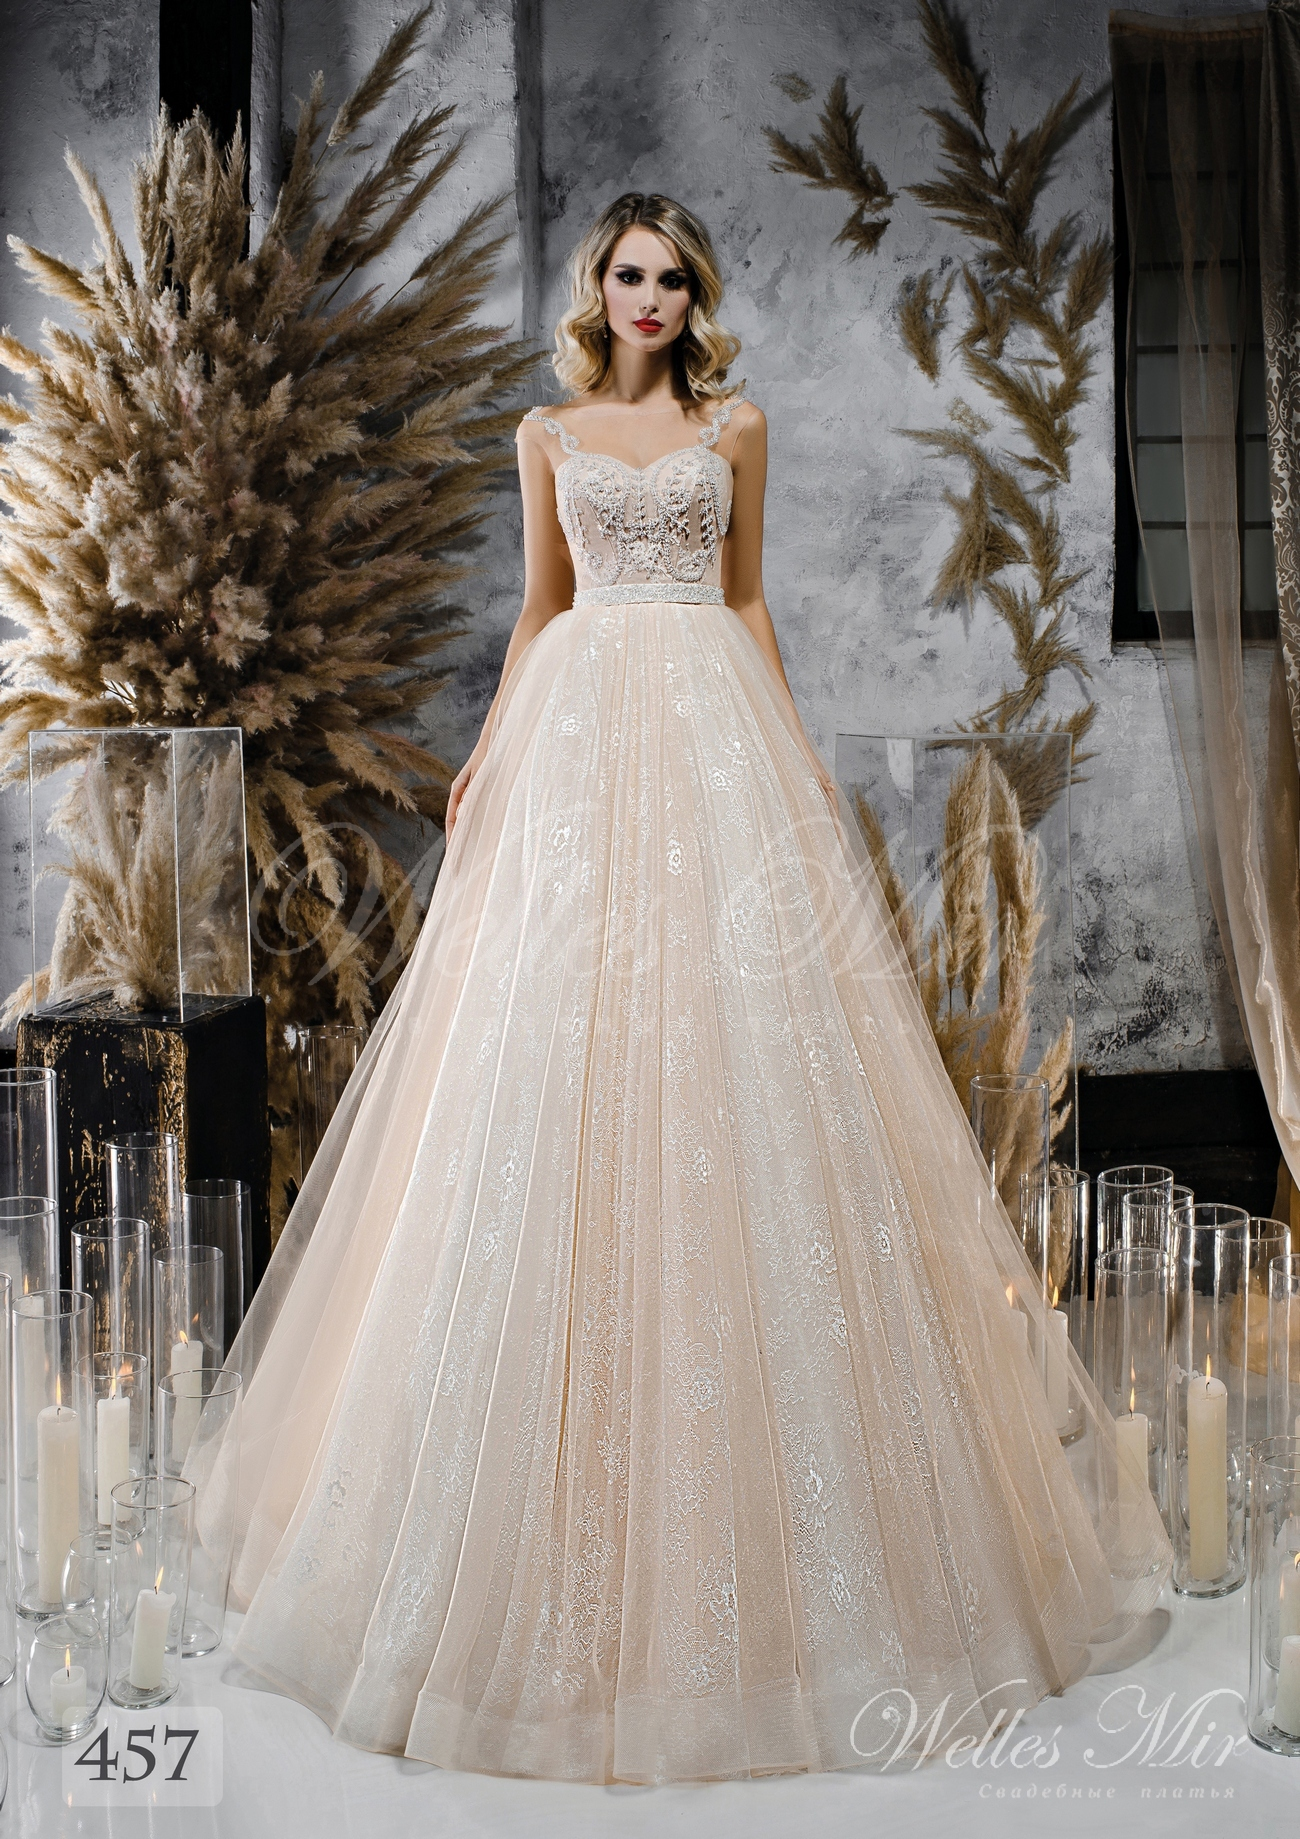 Wedding dress shade cappuccino from WellesMir 457